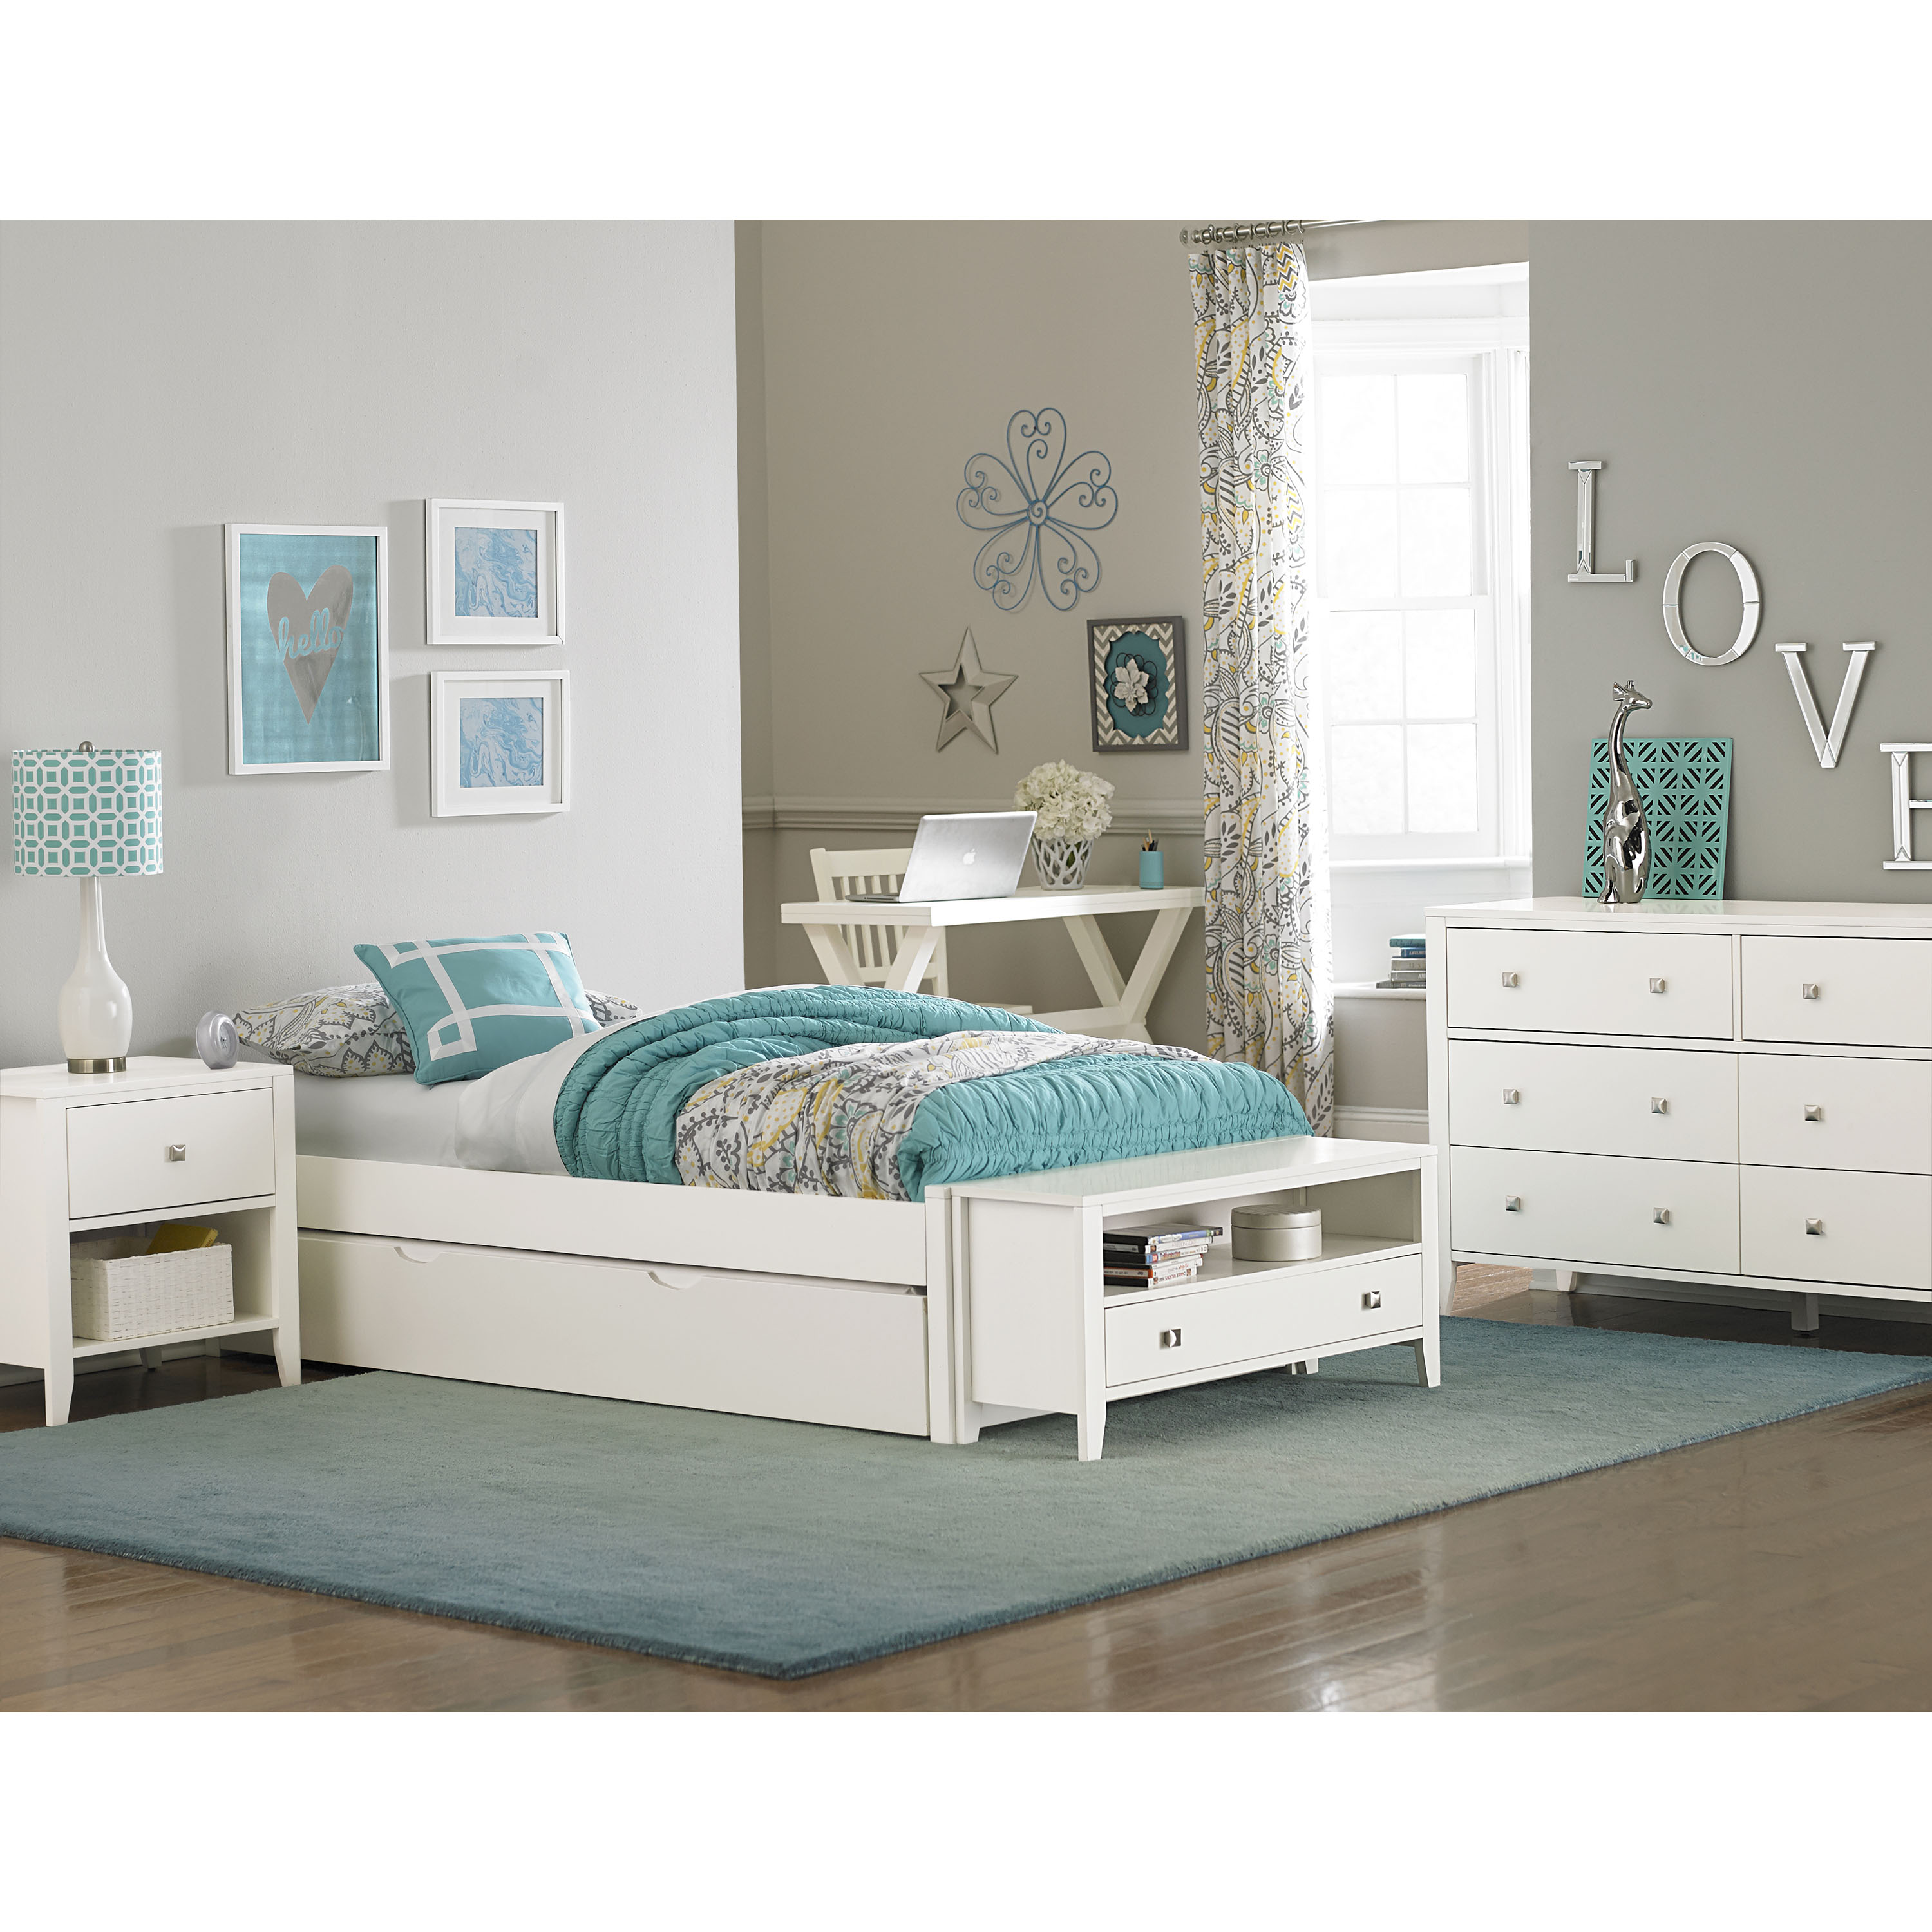 Hillsdale Pulse Platform Bed with Trundle, Multiple Sizes and Colors